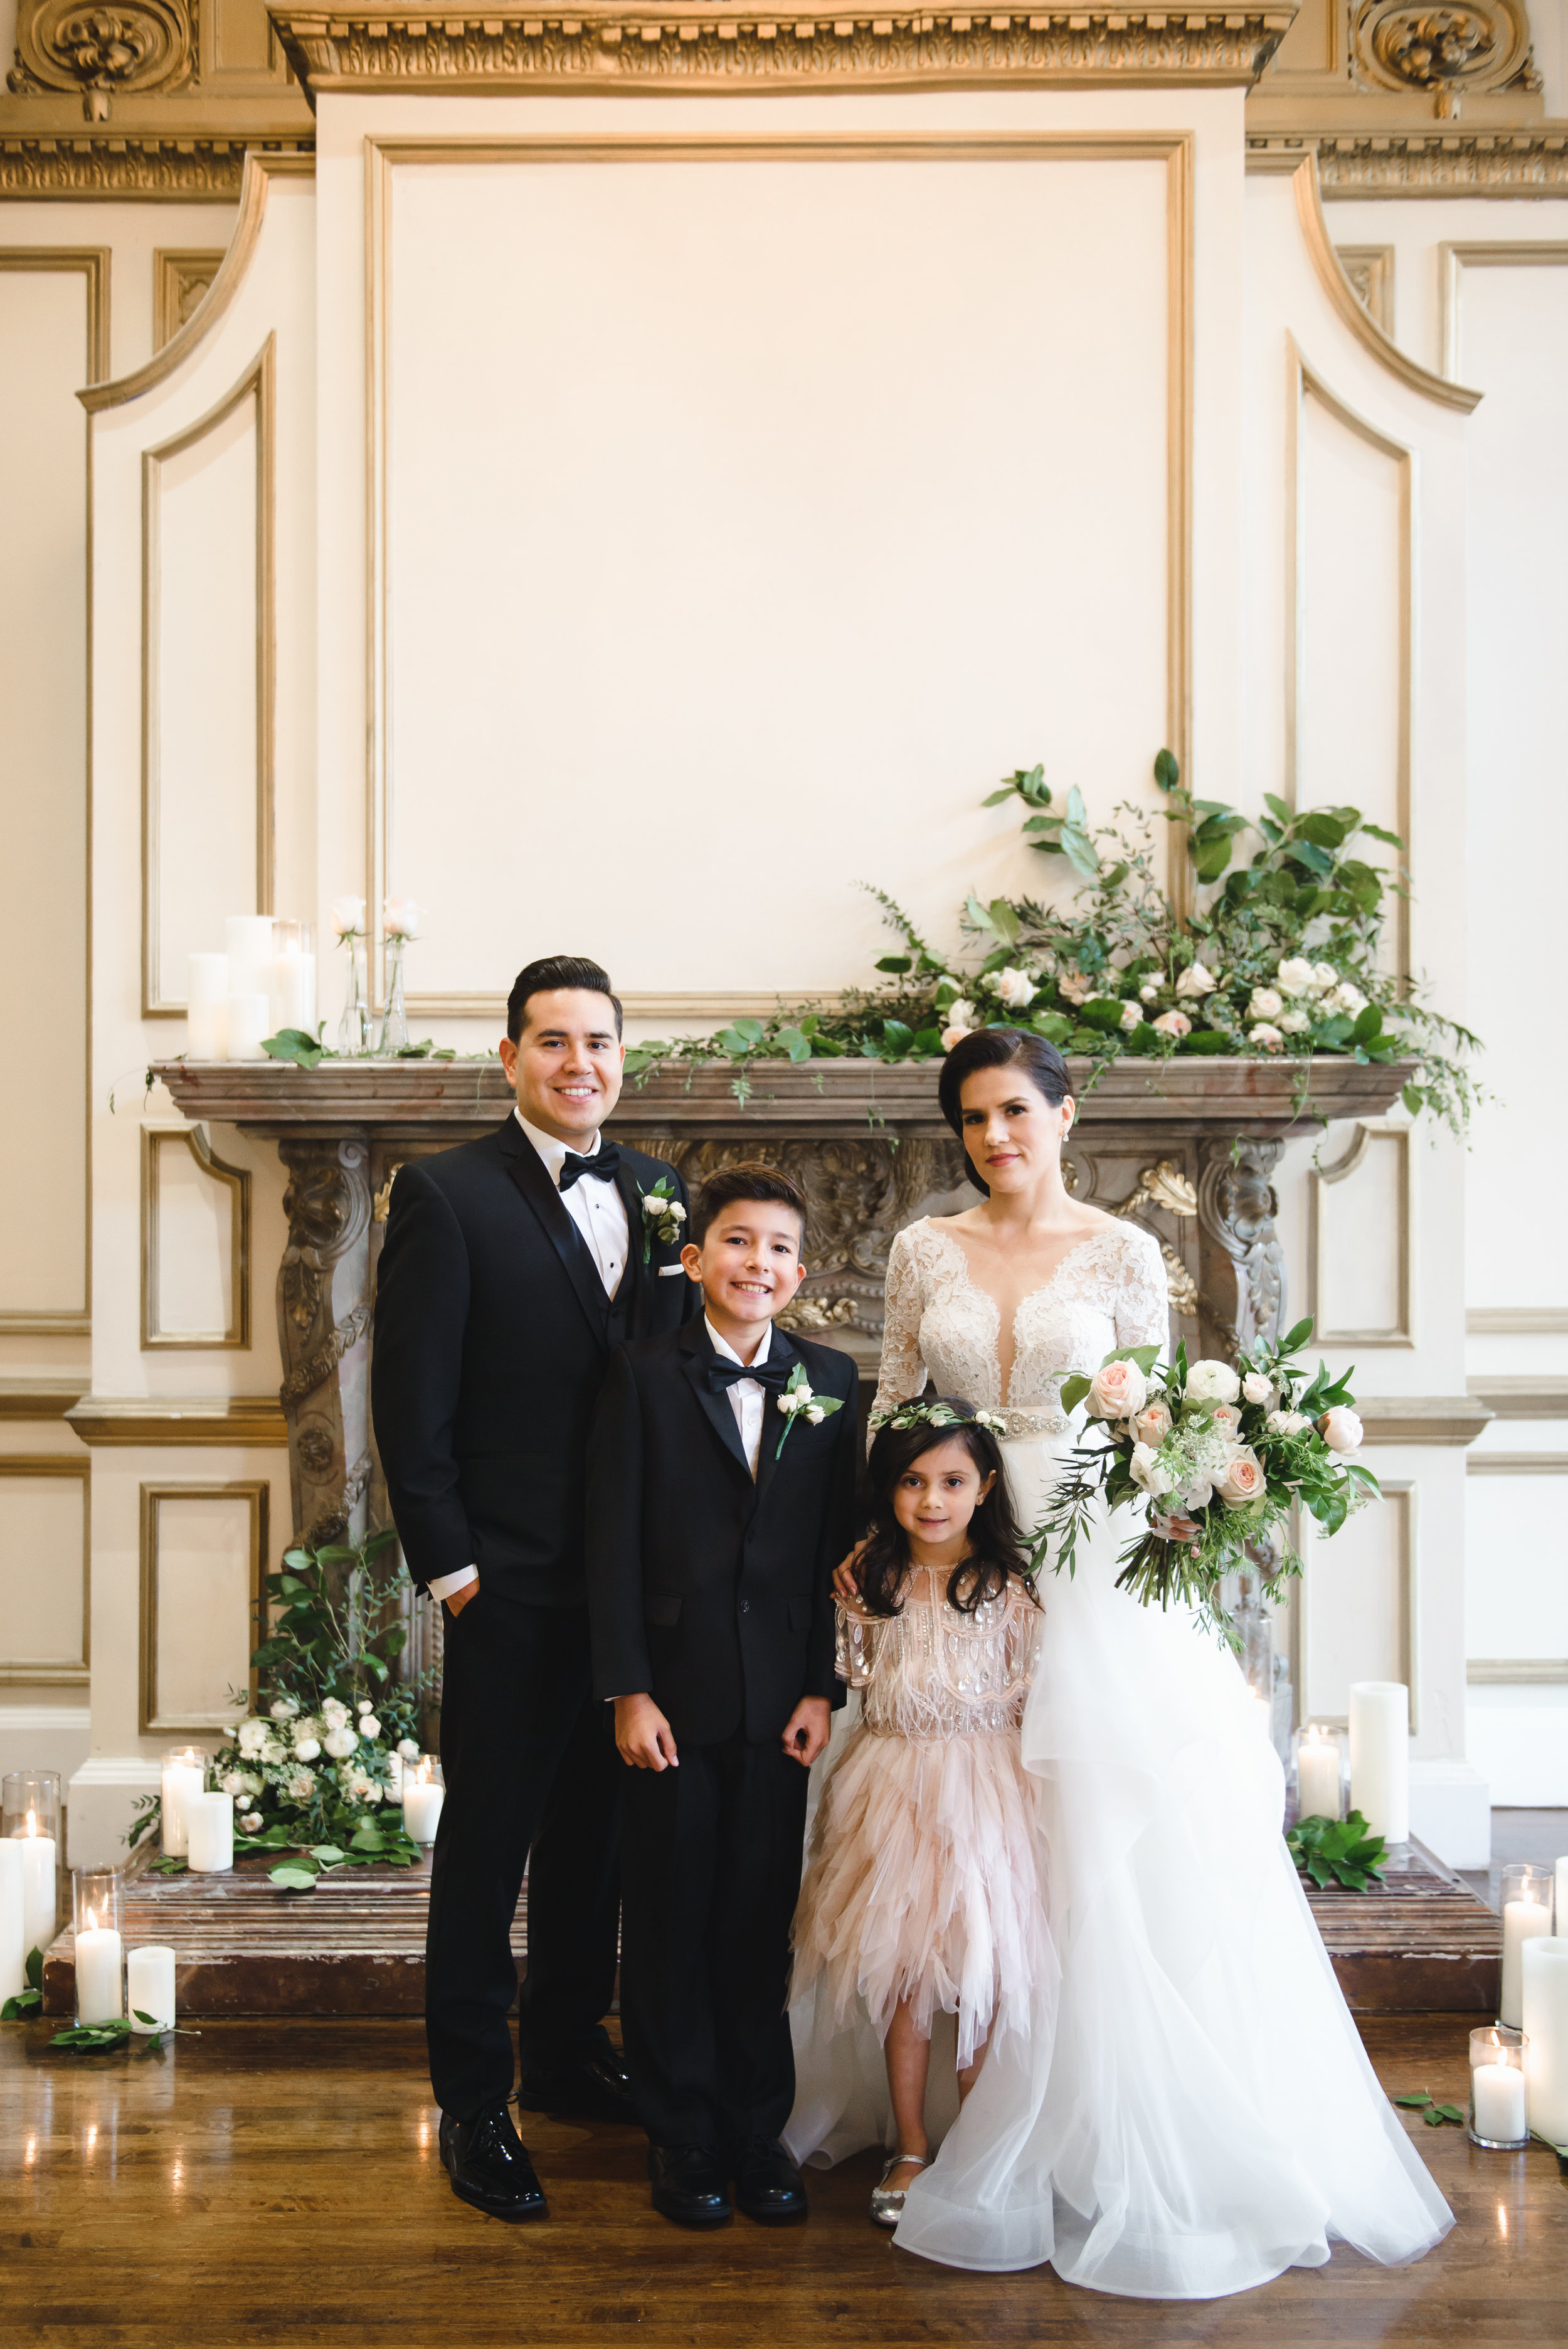 flower girls and ring bearer with bride and groom with mantel florals #lrqcfloral #dtla .jpg